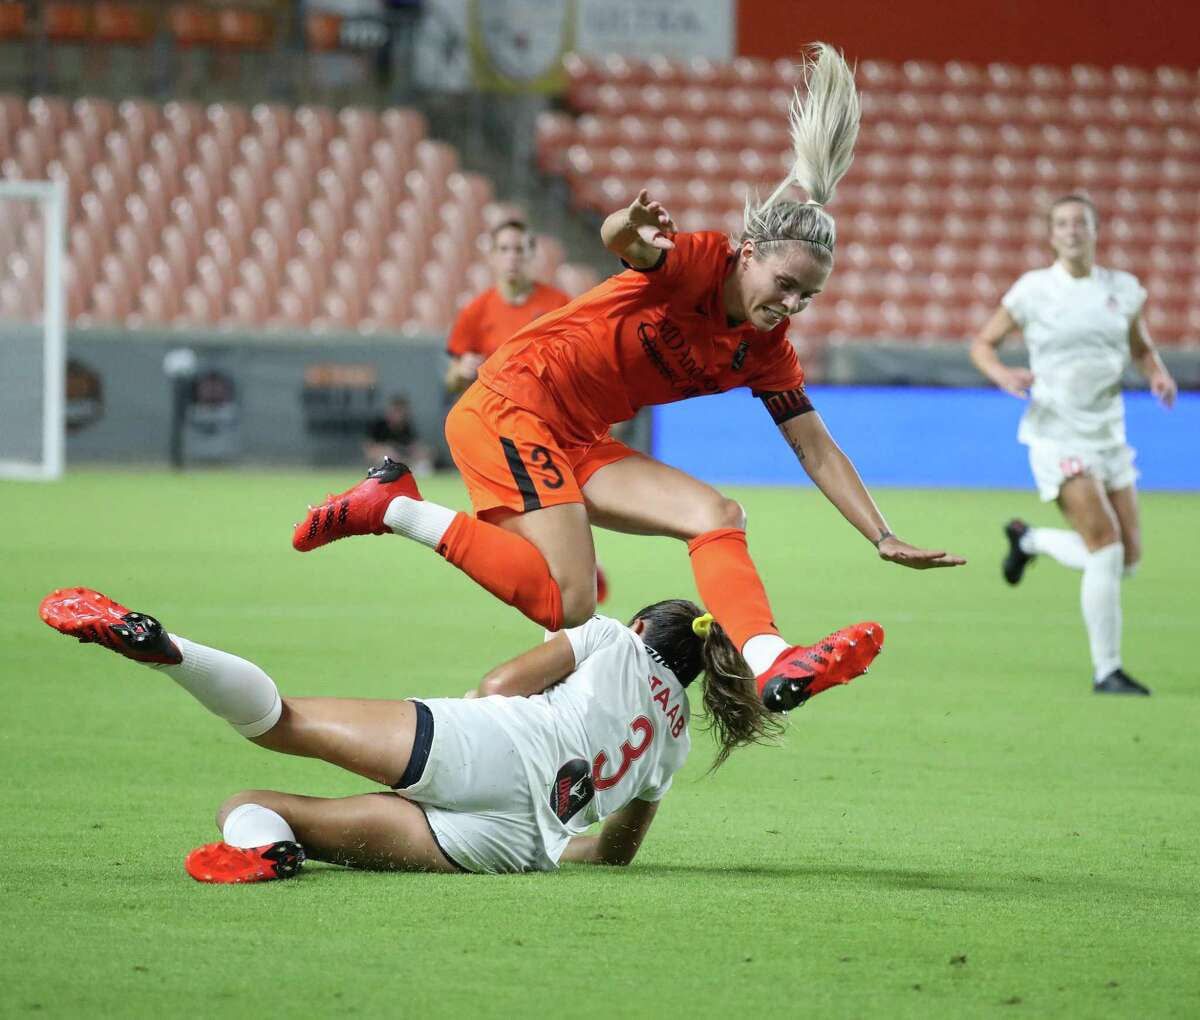 Rachel Daly and the Dash will face two big obstacles this week in the WICC event Portland.